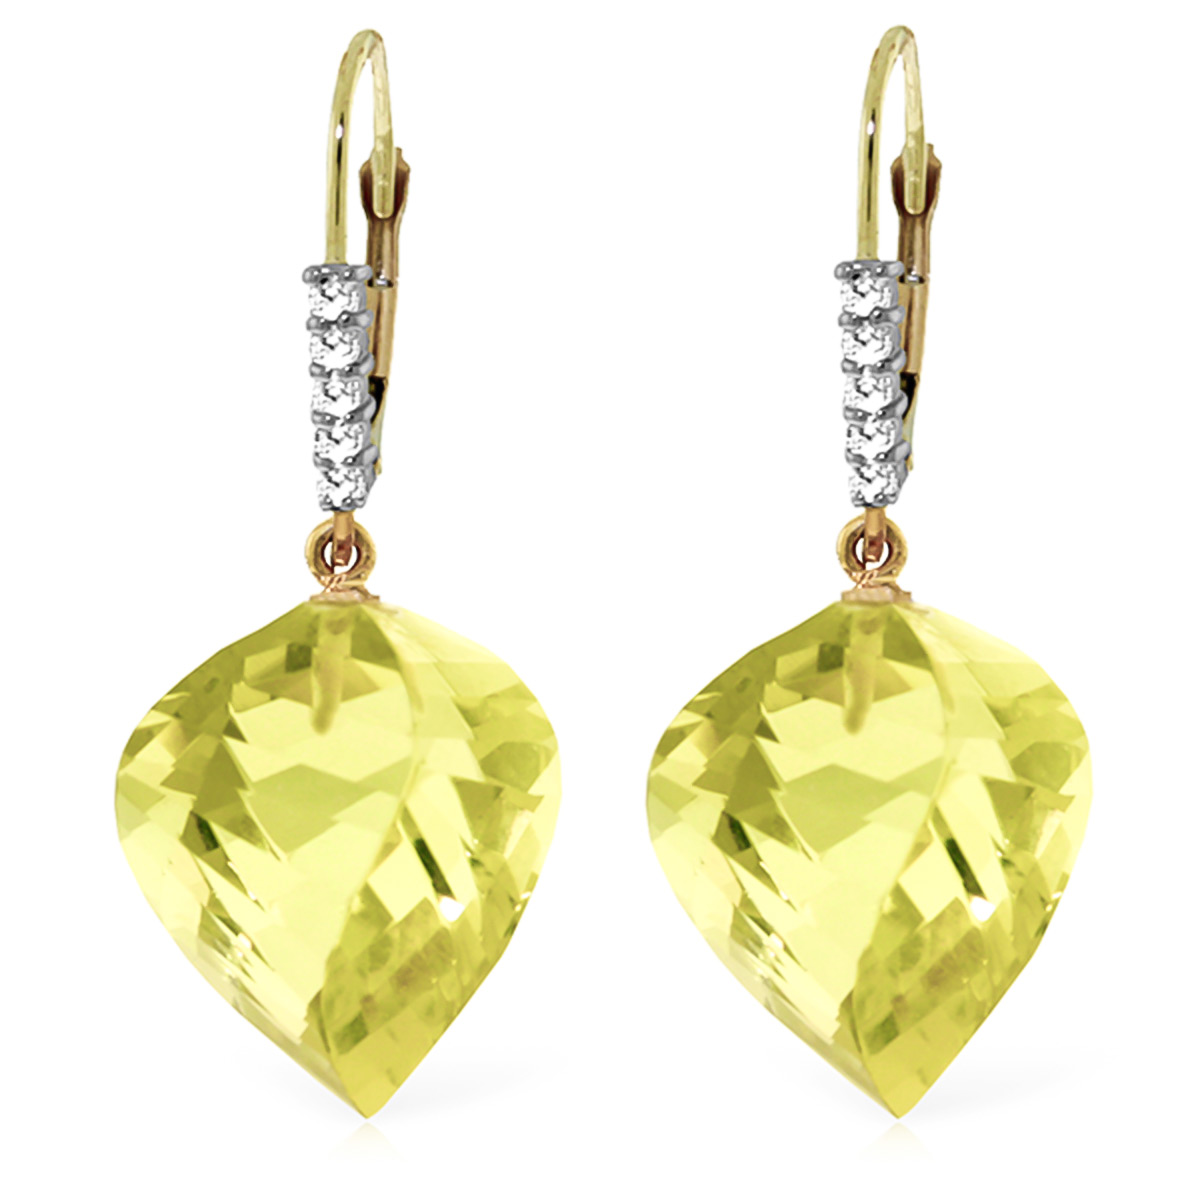 Lemon Quartz and Diamond Drop Earrings 21.5ctw in 9ct Gold